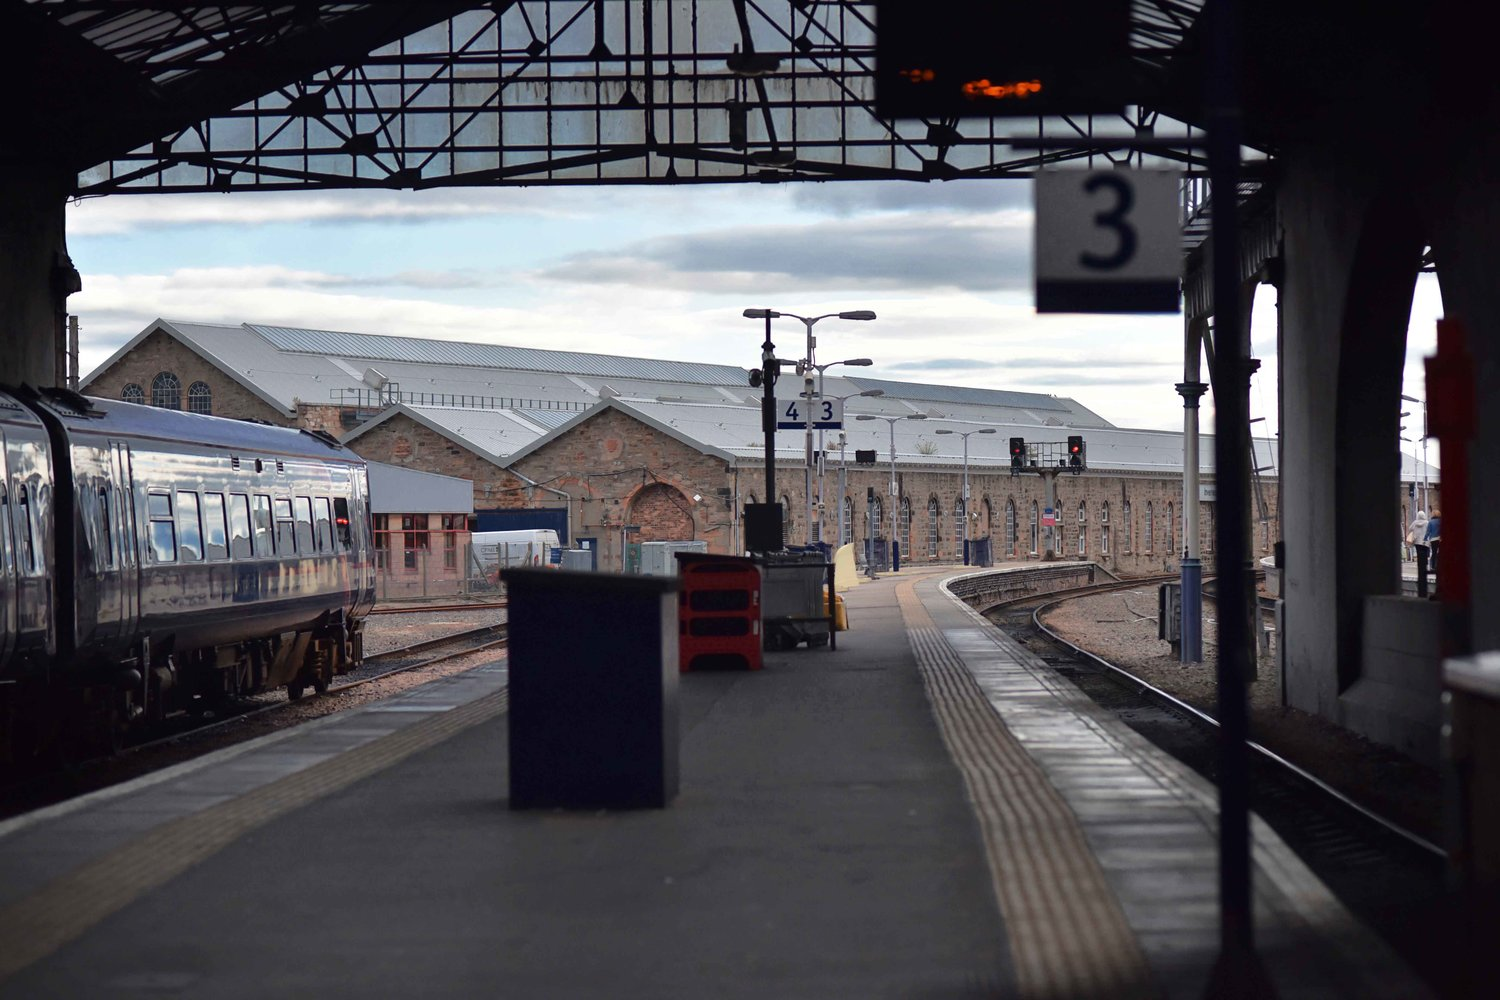 Inverness Railway Station, Inverness, Scotland. Image©thingstodot.com